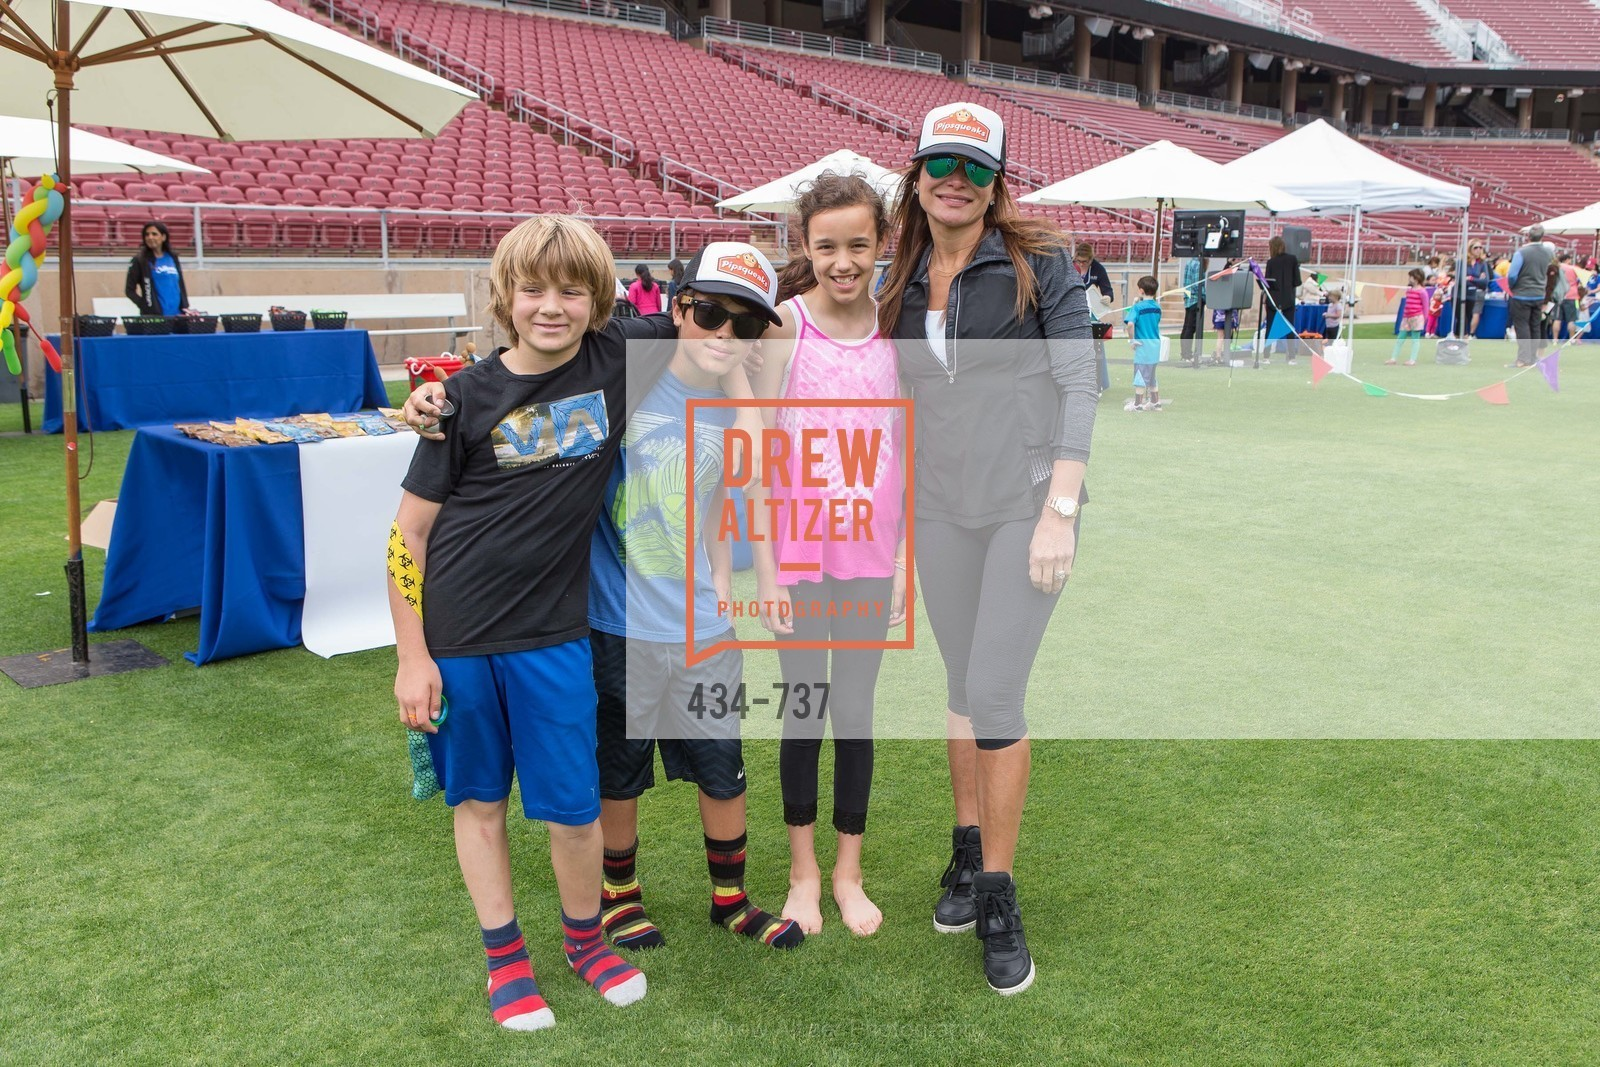 Ross Family, Children's Champions, US, May 17th, 2015,Drew Altizer, Drew Altizer Photography, full-service agency, private events, San Francisco photographer, photographer california